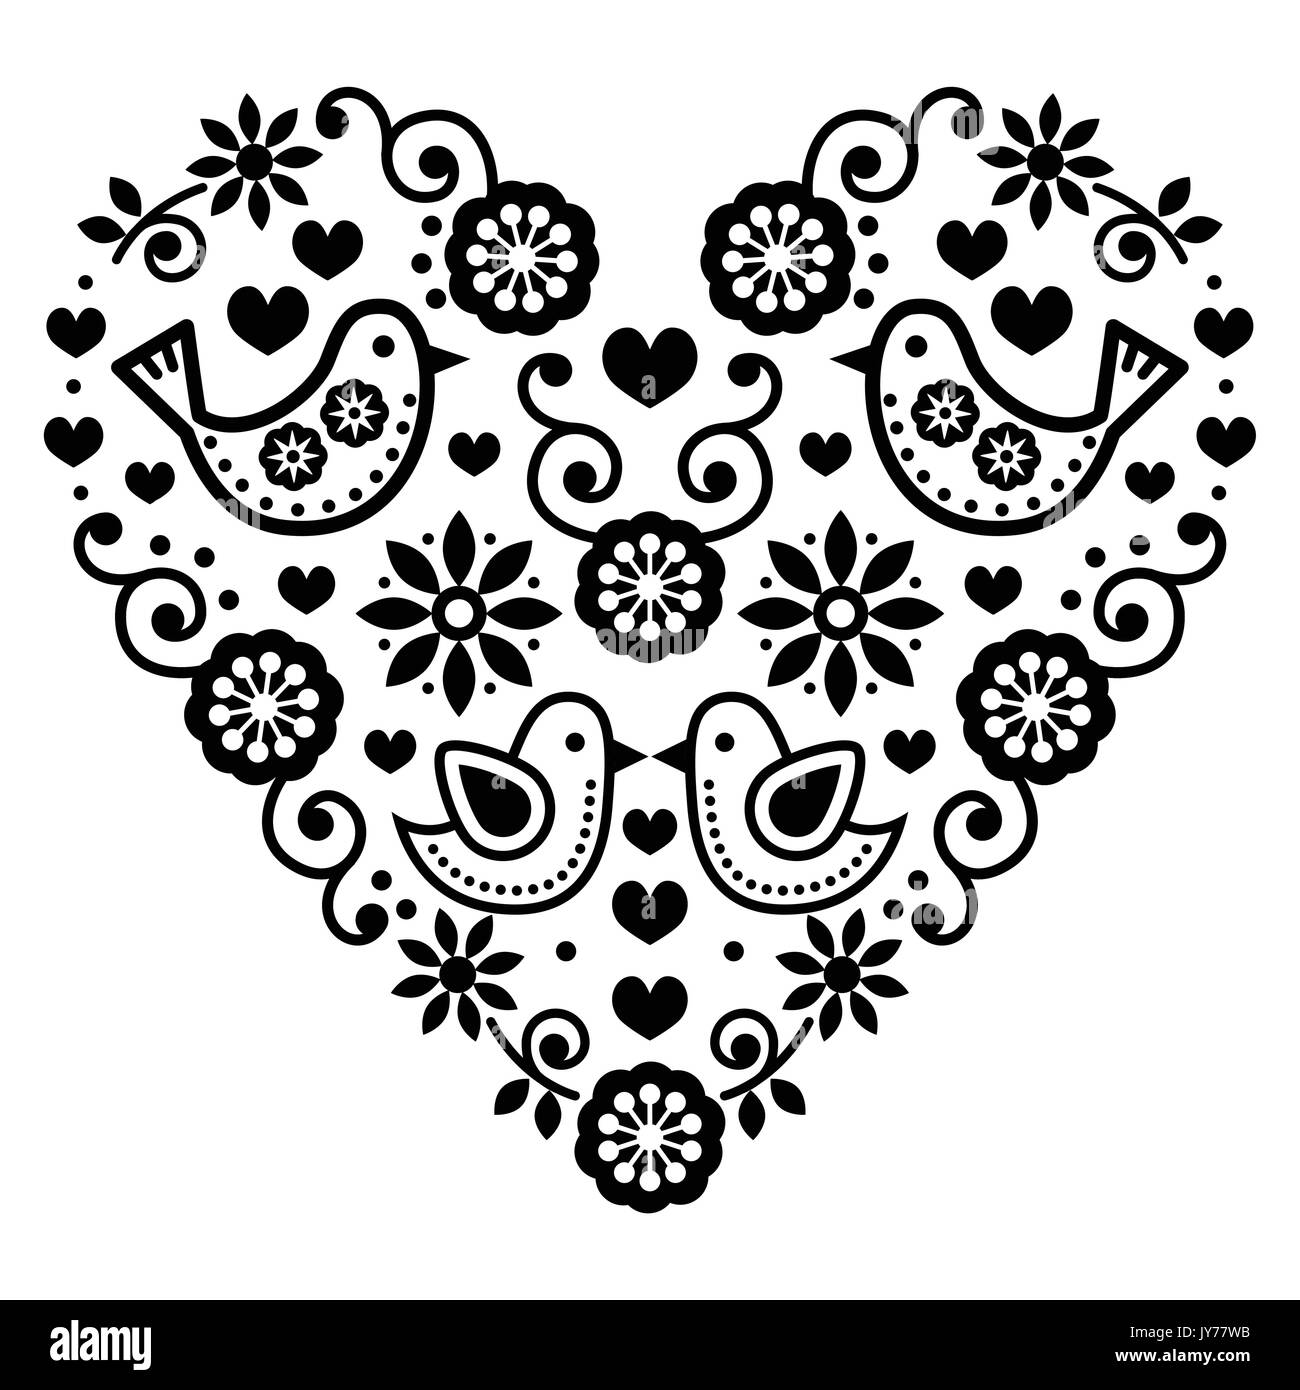 Folk art valentines day heart love wedding birthday greetings folk art valentines day heart love wedding birthday greetings card vector black folk heart with flowers and birds isolated on white kristyandbryce Gallery